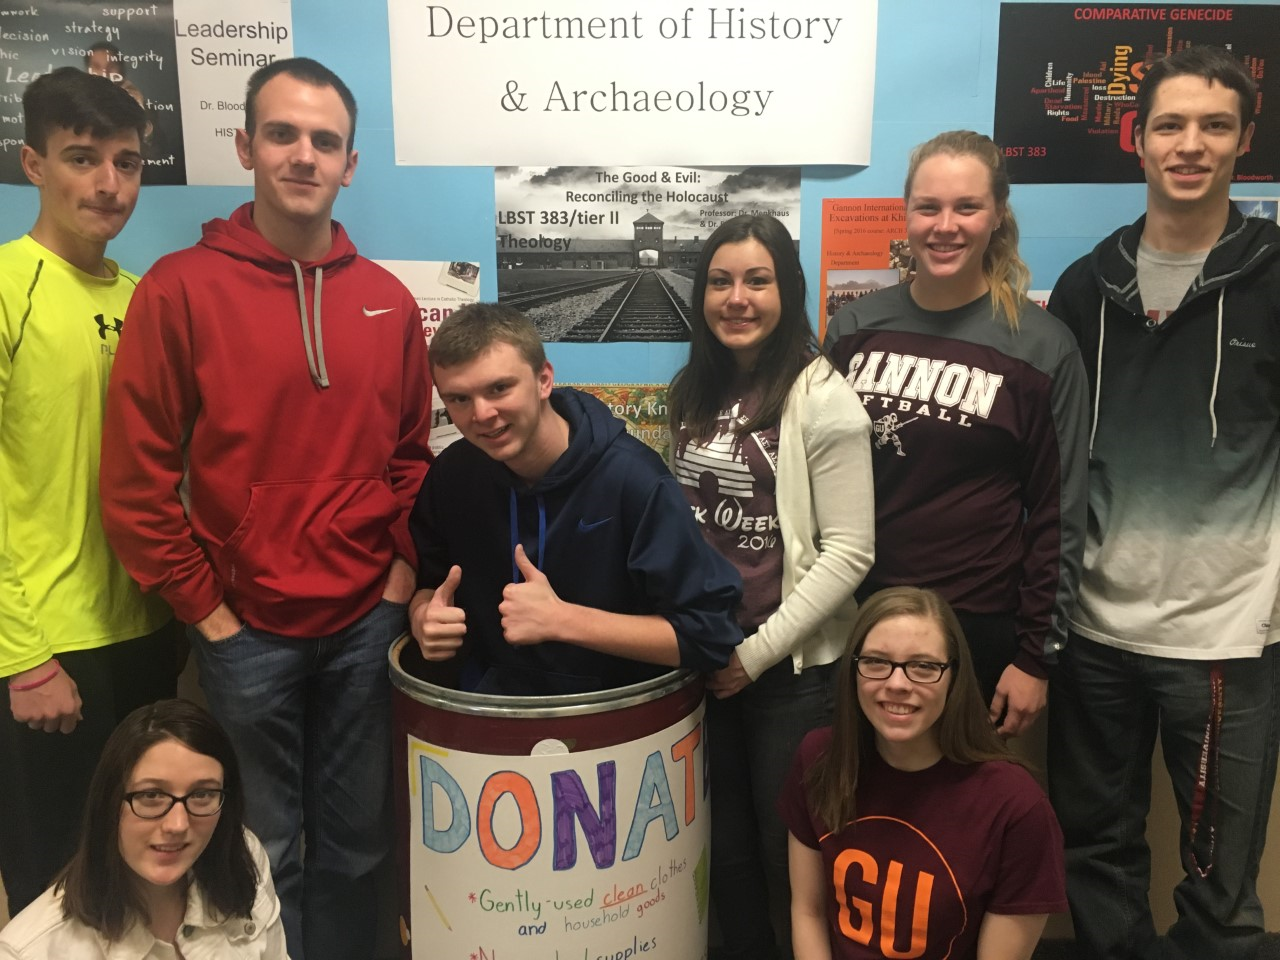 History students to accept donations for refugees